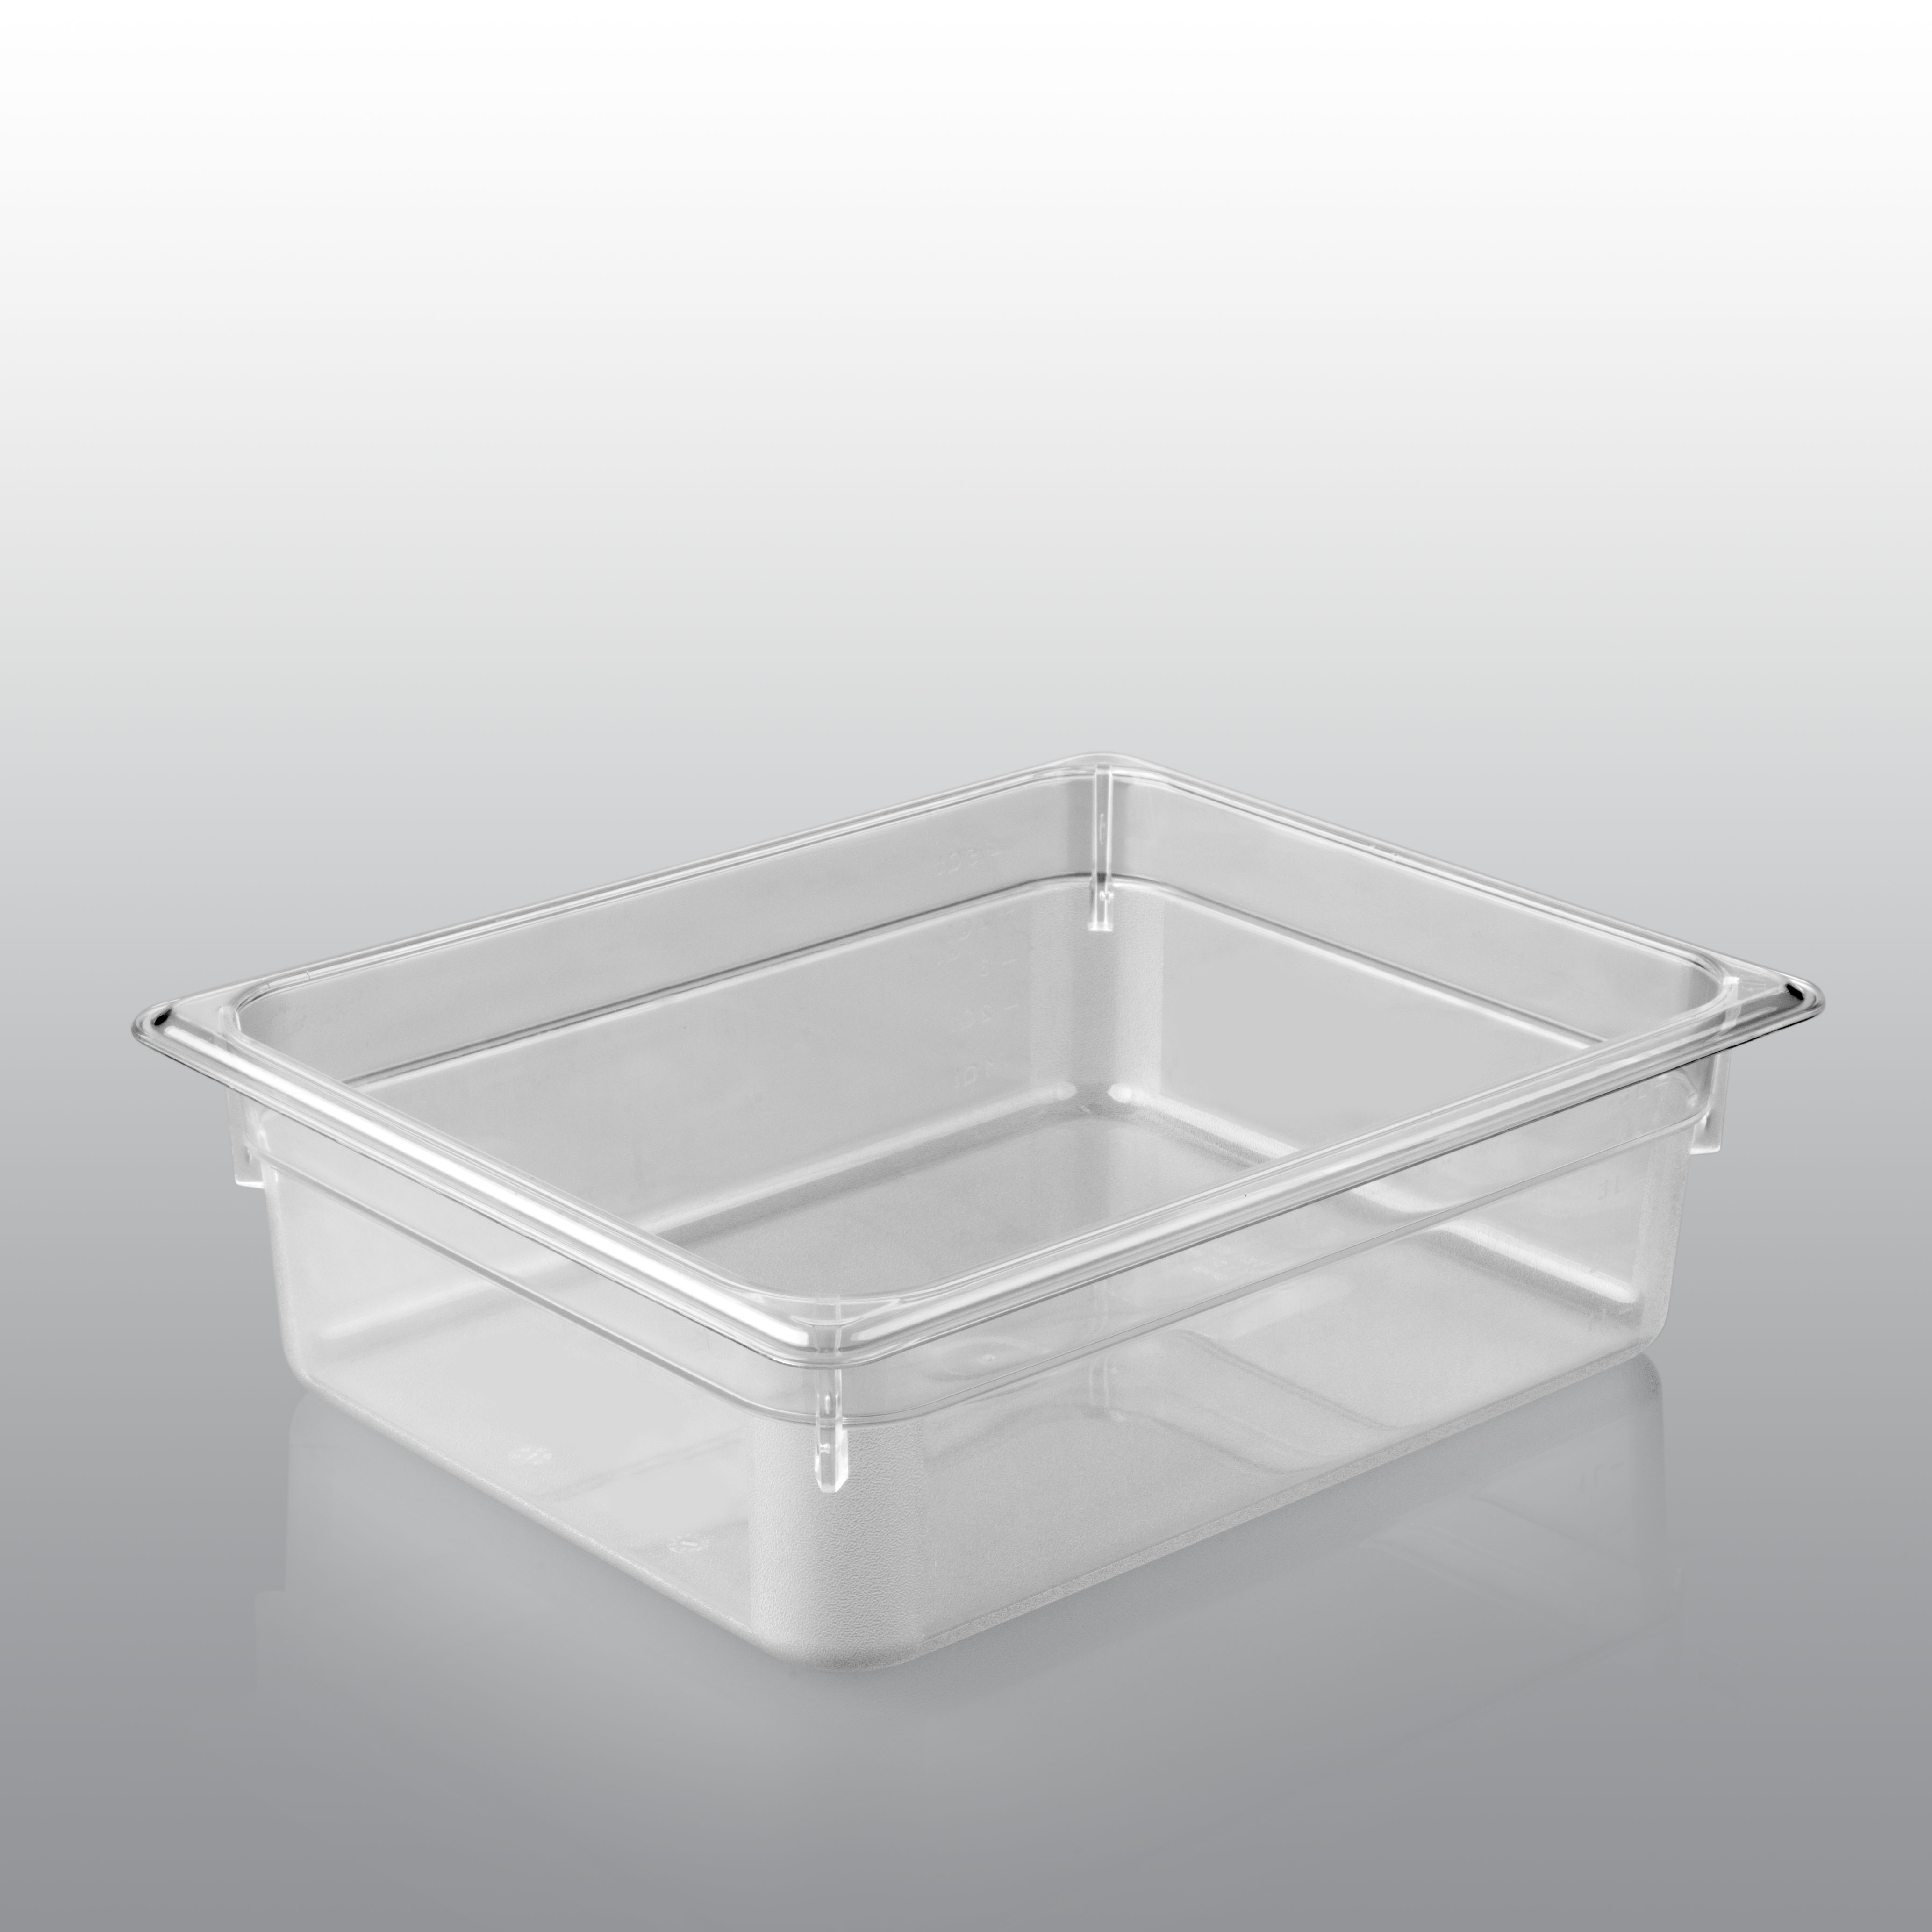 Gn container polycarbonate 1 2 gn 200 mm depth saro for 200mm wide kitchen wall unit